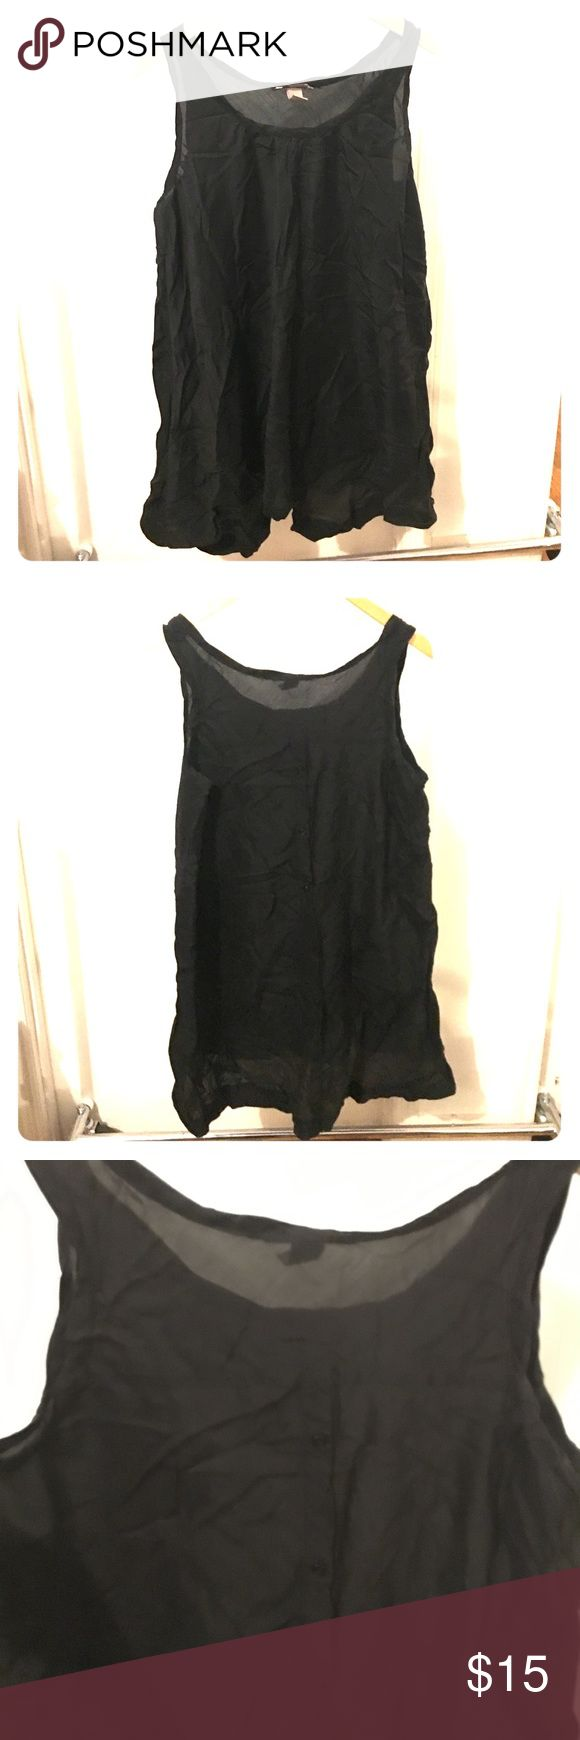 Black Tunic Dress With back buttons size 18 Wish I had better lighting to show how cute this is. Sleeveless Tunic dress, Sleeveless. With buttons down the back. Light and airy fabric. Size: 18. Wrinkled from storage. By h&m H&M Dresses Mini